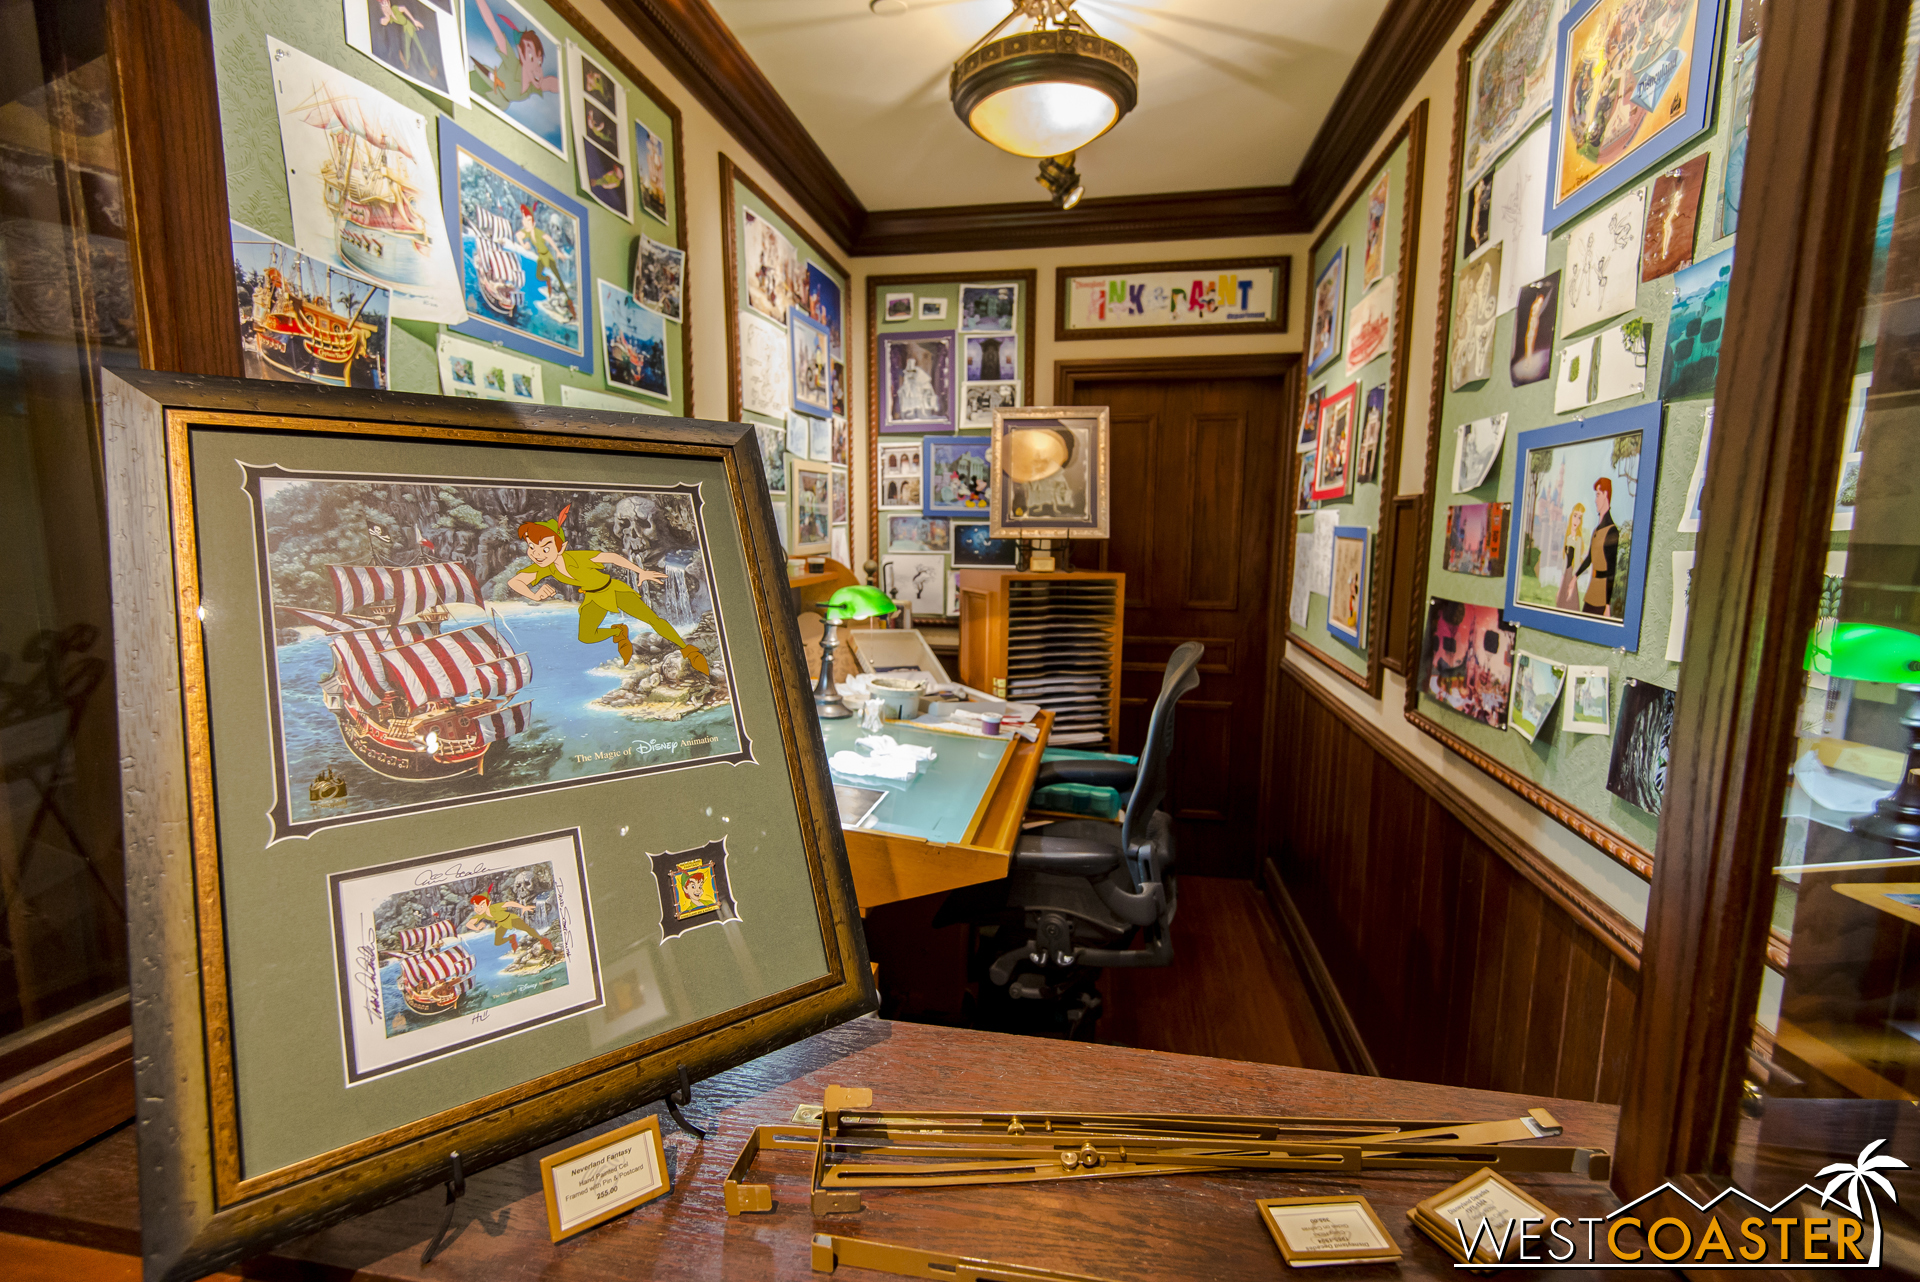 The Disney Gallery drawing studio has also been updated with Peter Pan content.